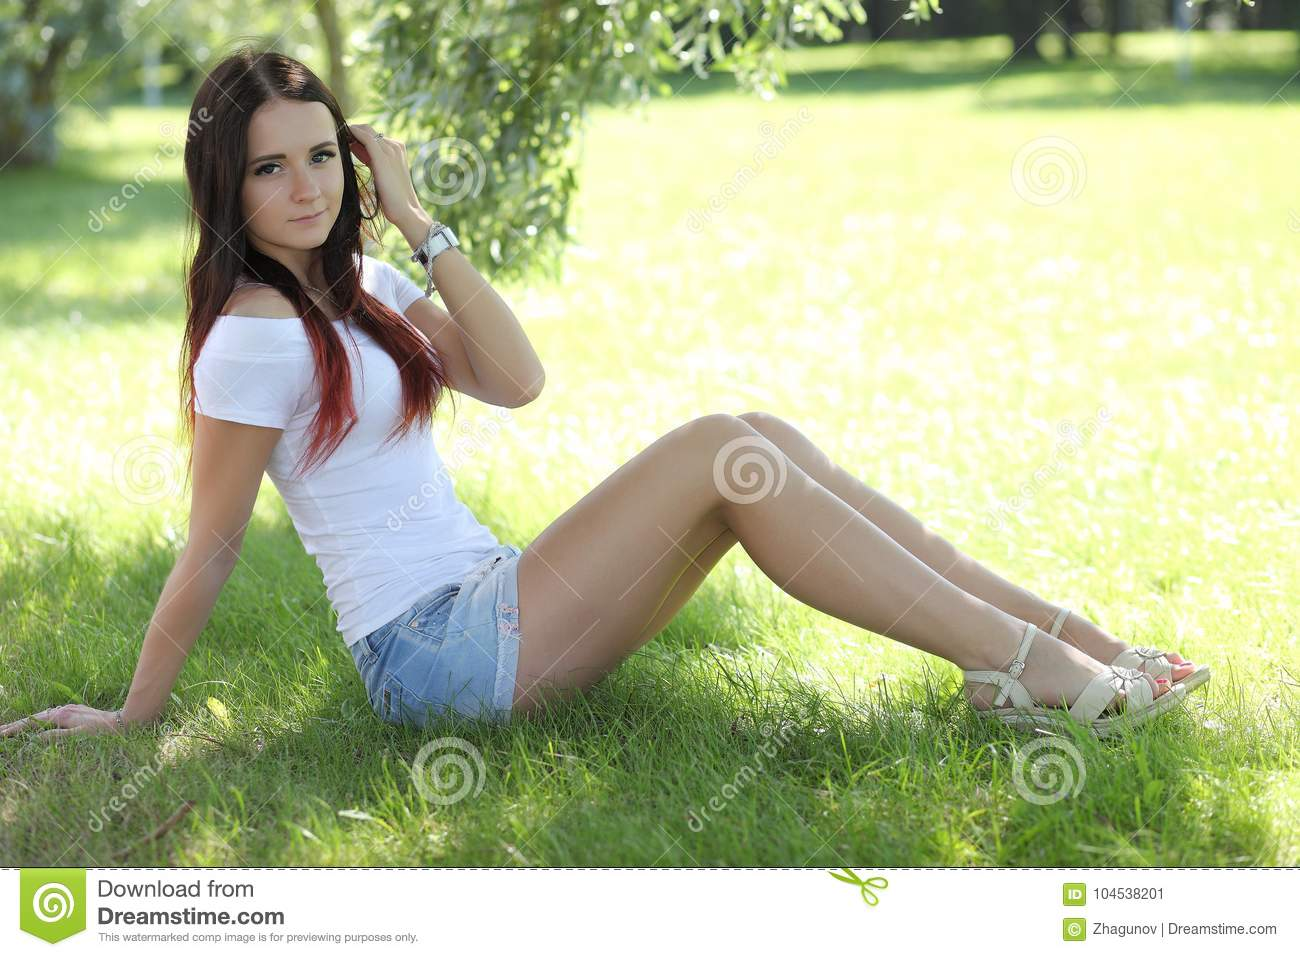 Erotic Girl With Mini Skirt On Green Grass